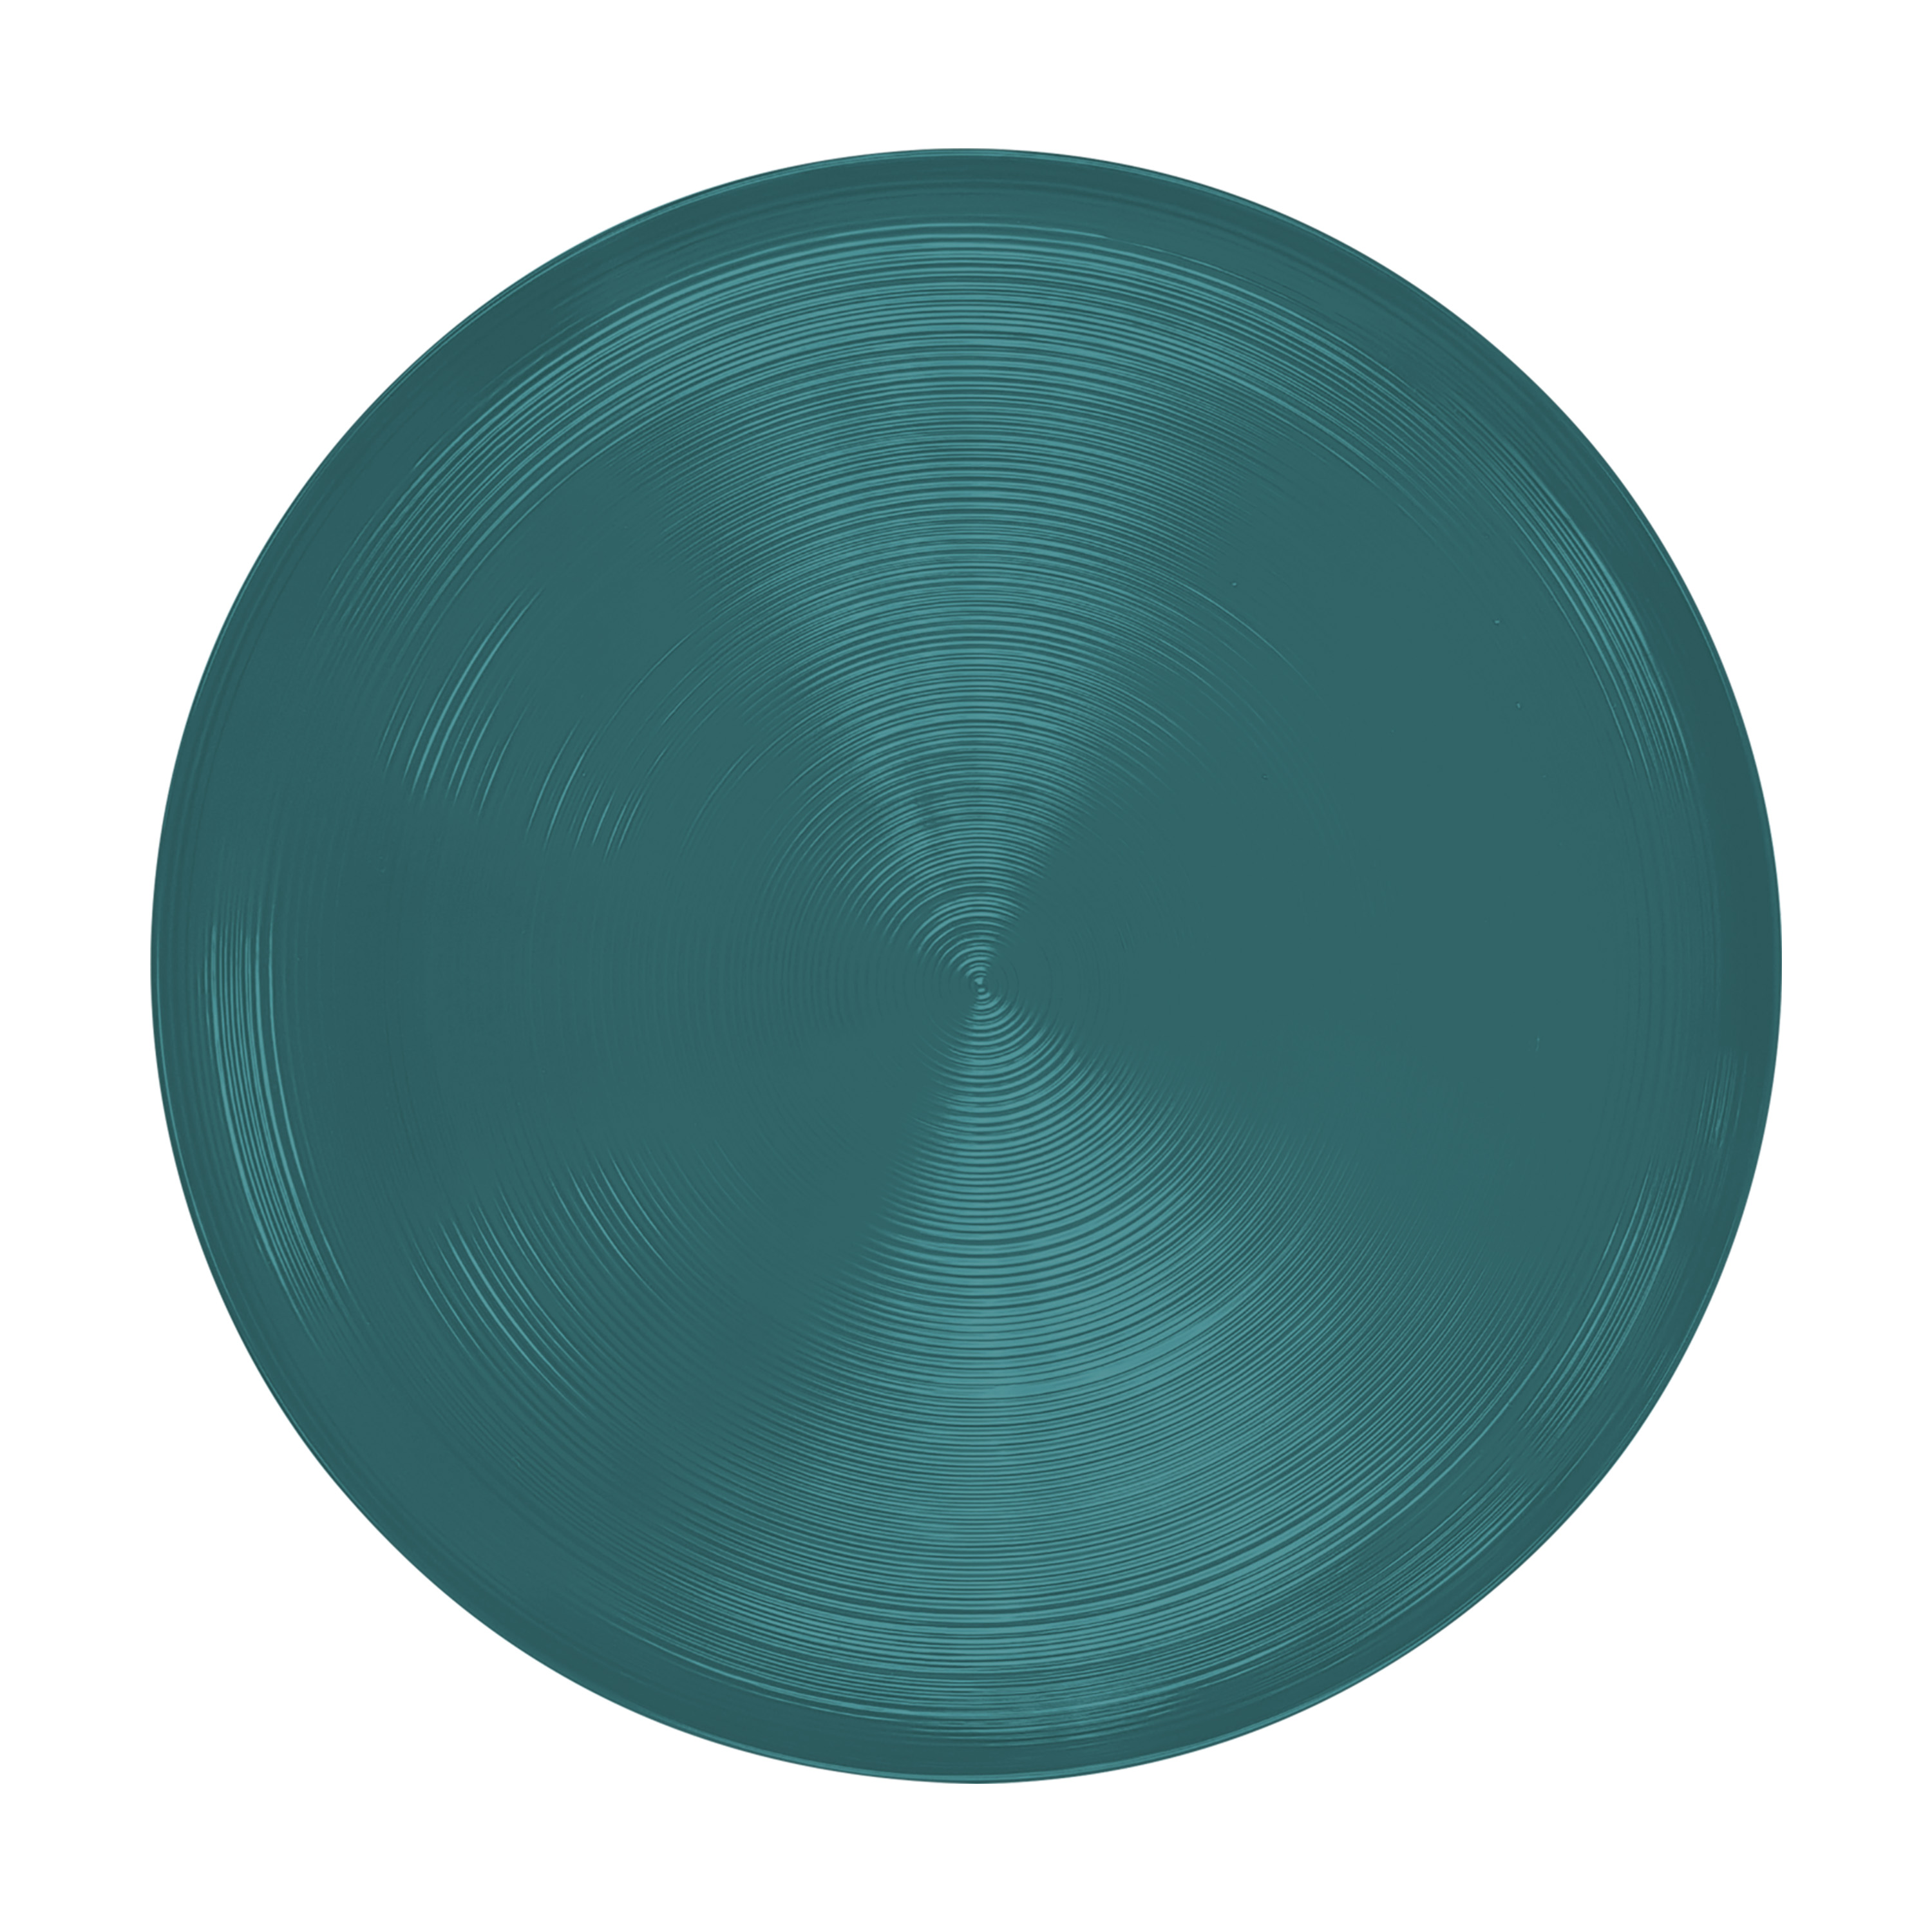 American Conventional Plate & Bowl Sets, Marine, 12-piece set slideshow image 4